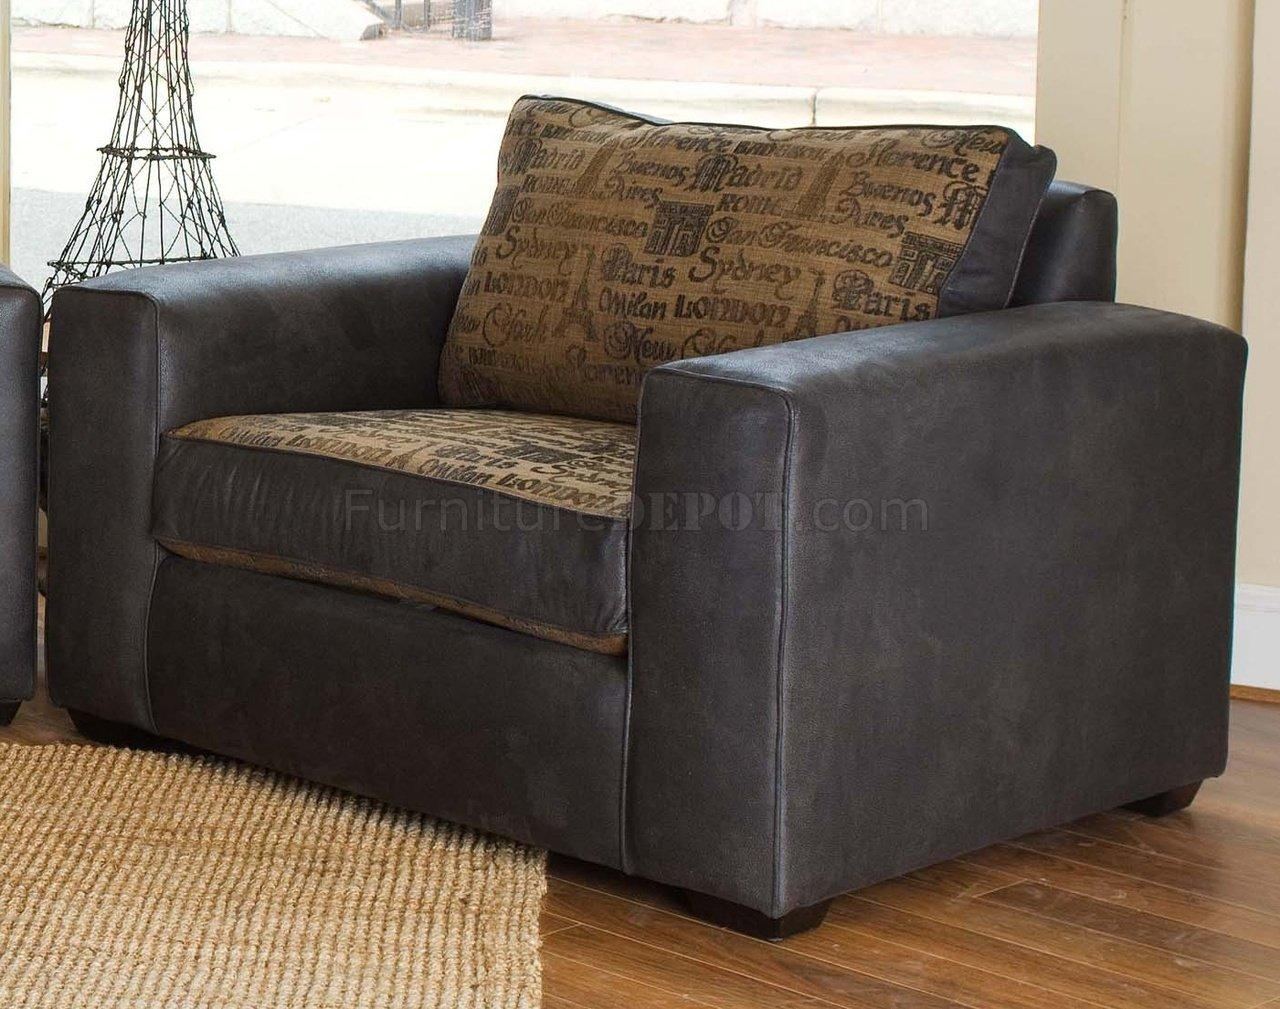 & Leather Modern Living Room Sofa & Large Chair Set Regarding Large Sofa Chairs (View 17 of 20)